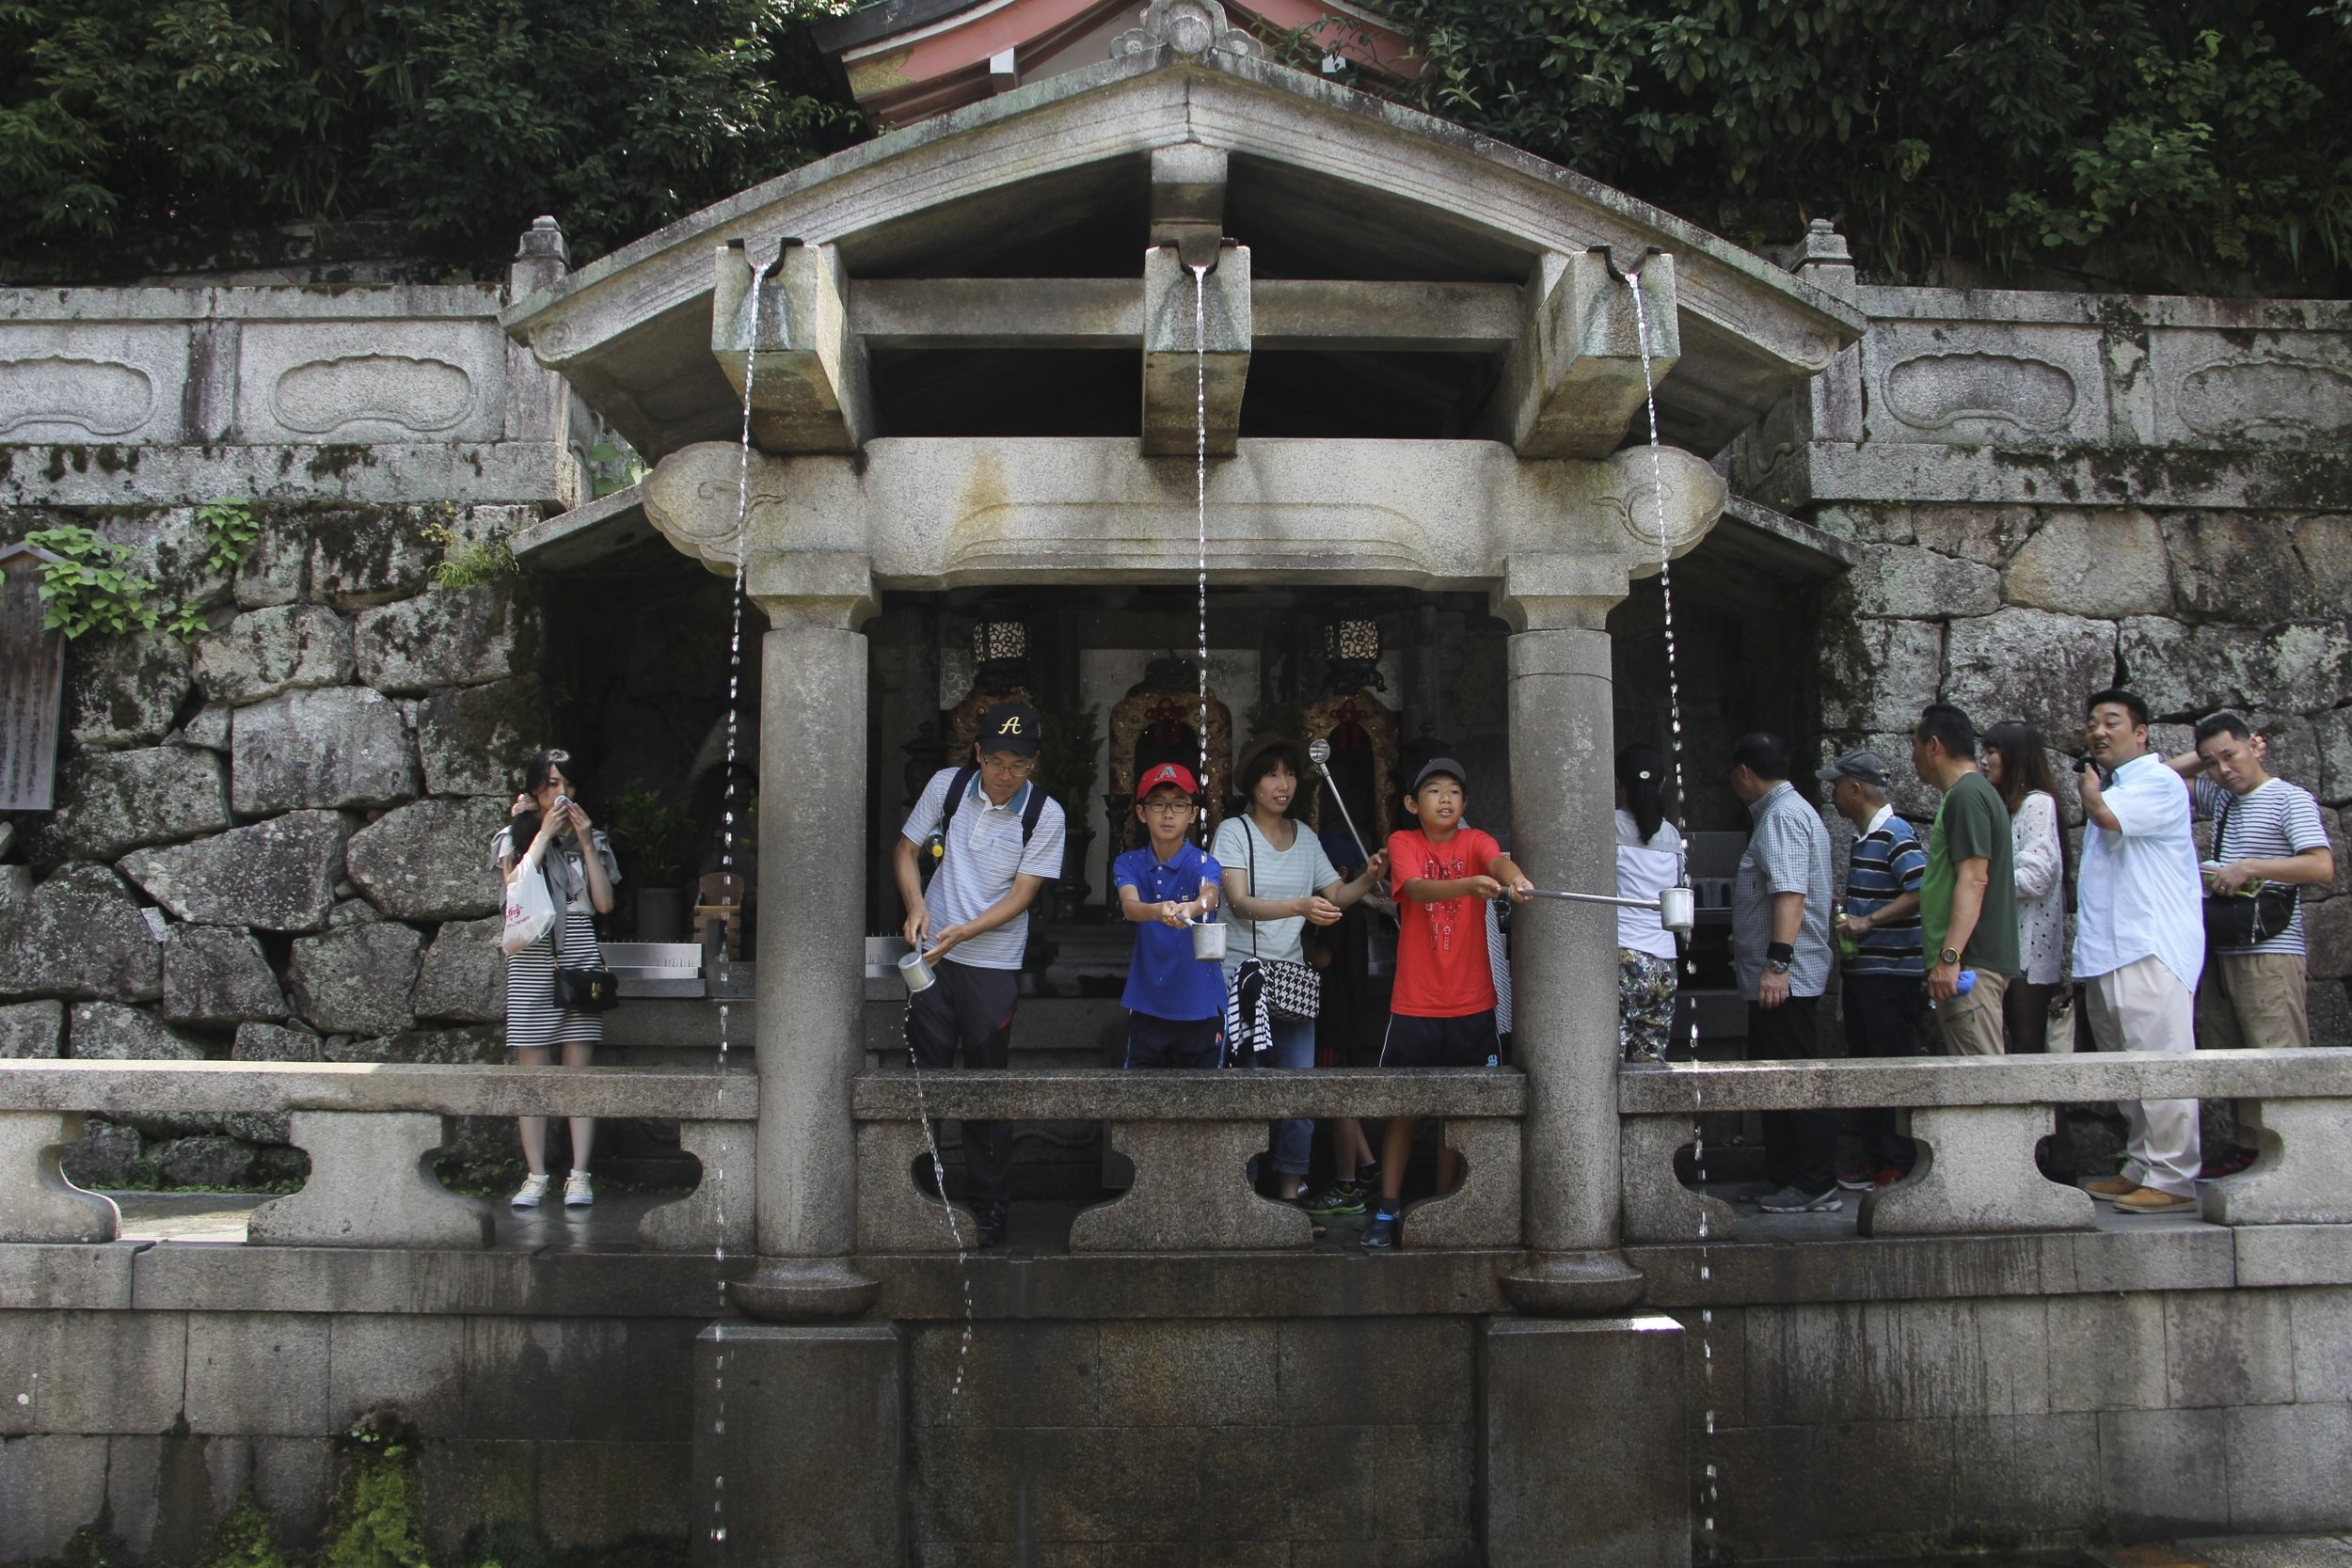 Beneath the main hall of the  Kiyomizu-dera  Temple is the Otowa waterfall, where three channels of water fall into a pond. Visitors can catch and drink the water, which is believed to have wish-granting powers.